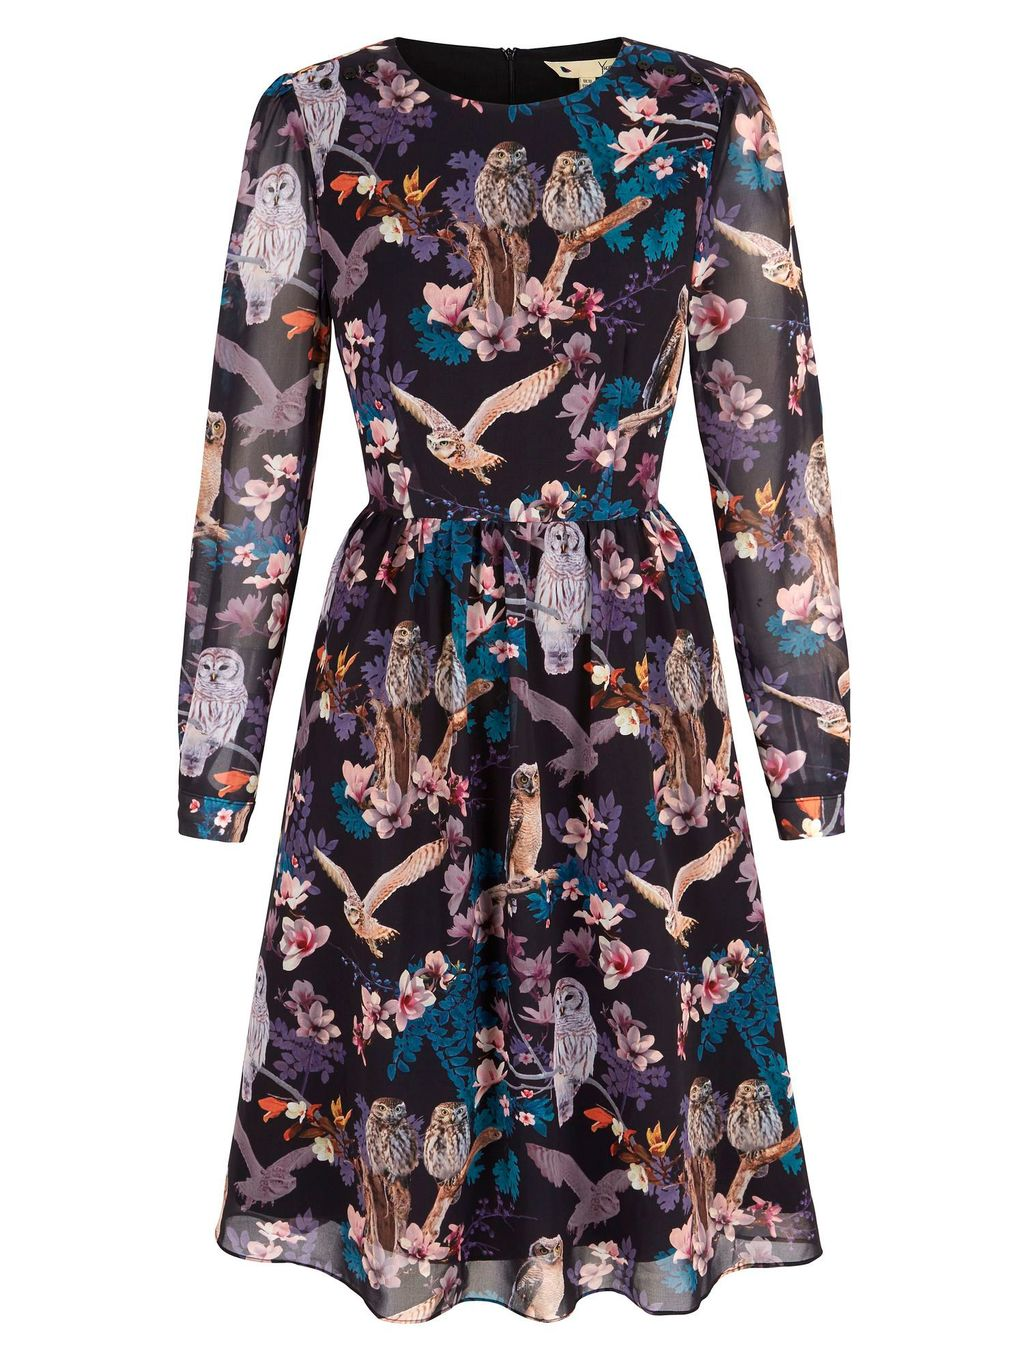 Owl And Flower Print Midi Dress, Black - secondary colour: purple; predominant colour: black; occasions: evening; length: on the knee; fit: fitted at waist & bust; style: fit & flare; fibres: polyester/polyamide - 100%; neckline: crew; hip detail: soft pleats at hip/draping at hip/flared at hip; sleeve length: long sleeve; sleeve style: standard; texture group: sheer fabrics/chiffon/organza etc.; pattern type: fabric; pattern: florals; multicoloured: multicoloured; season: a/w 2015